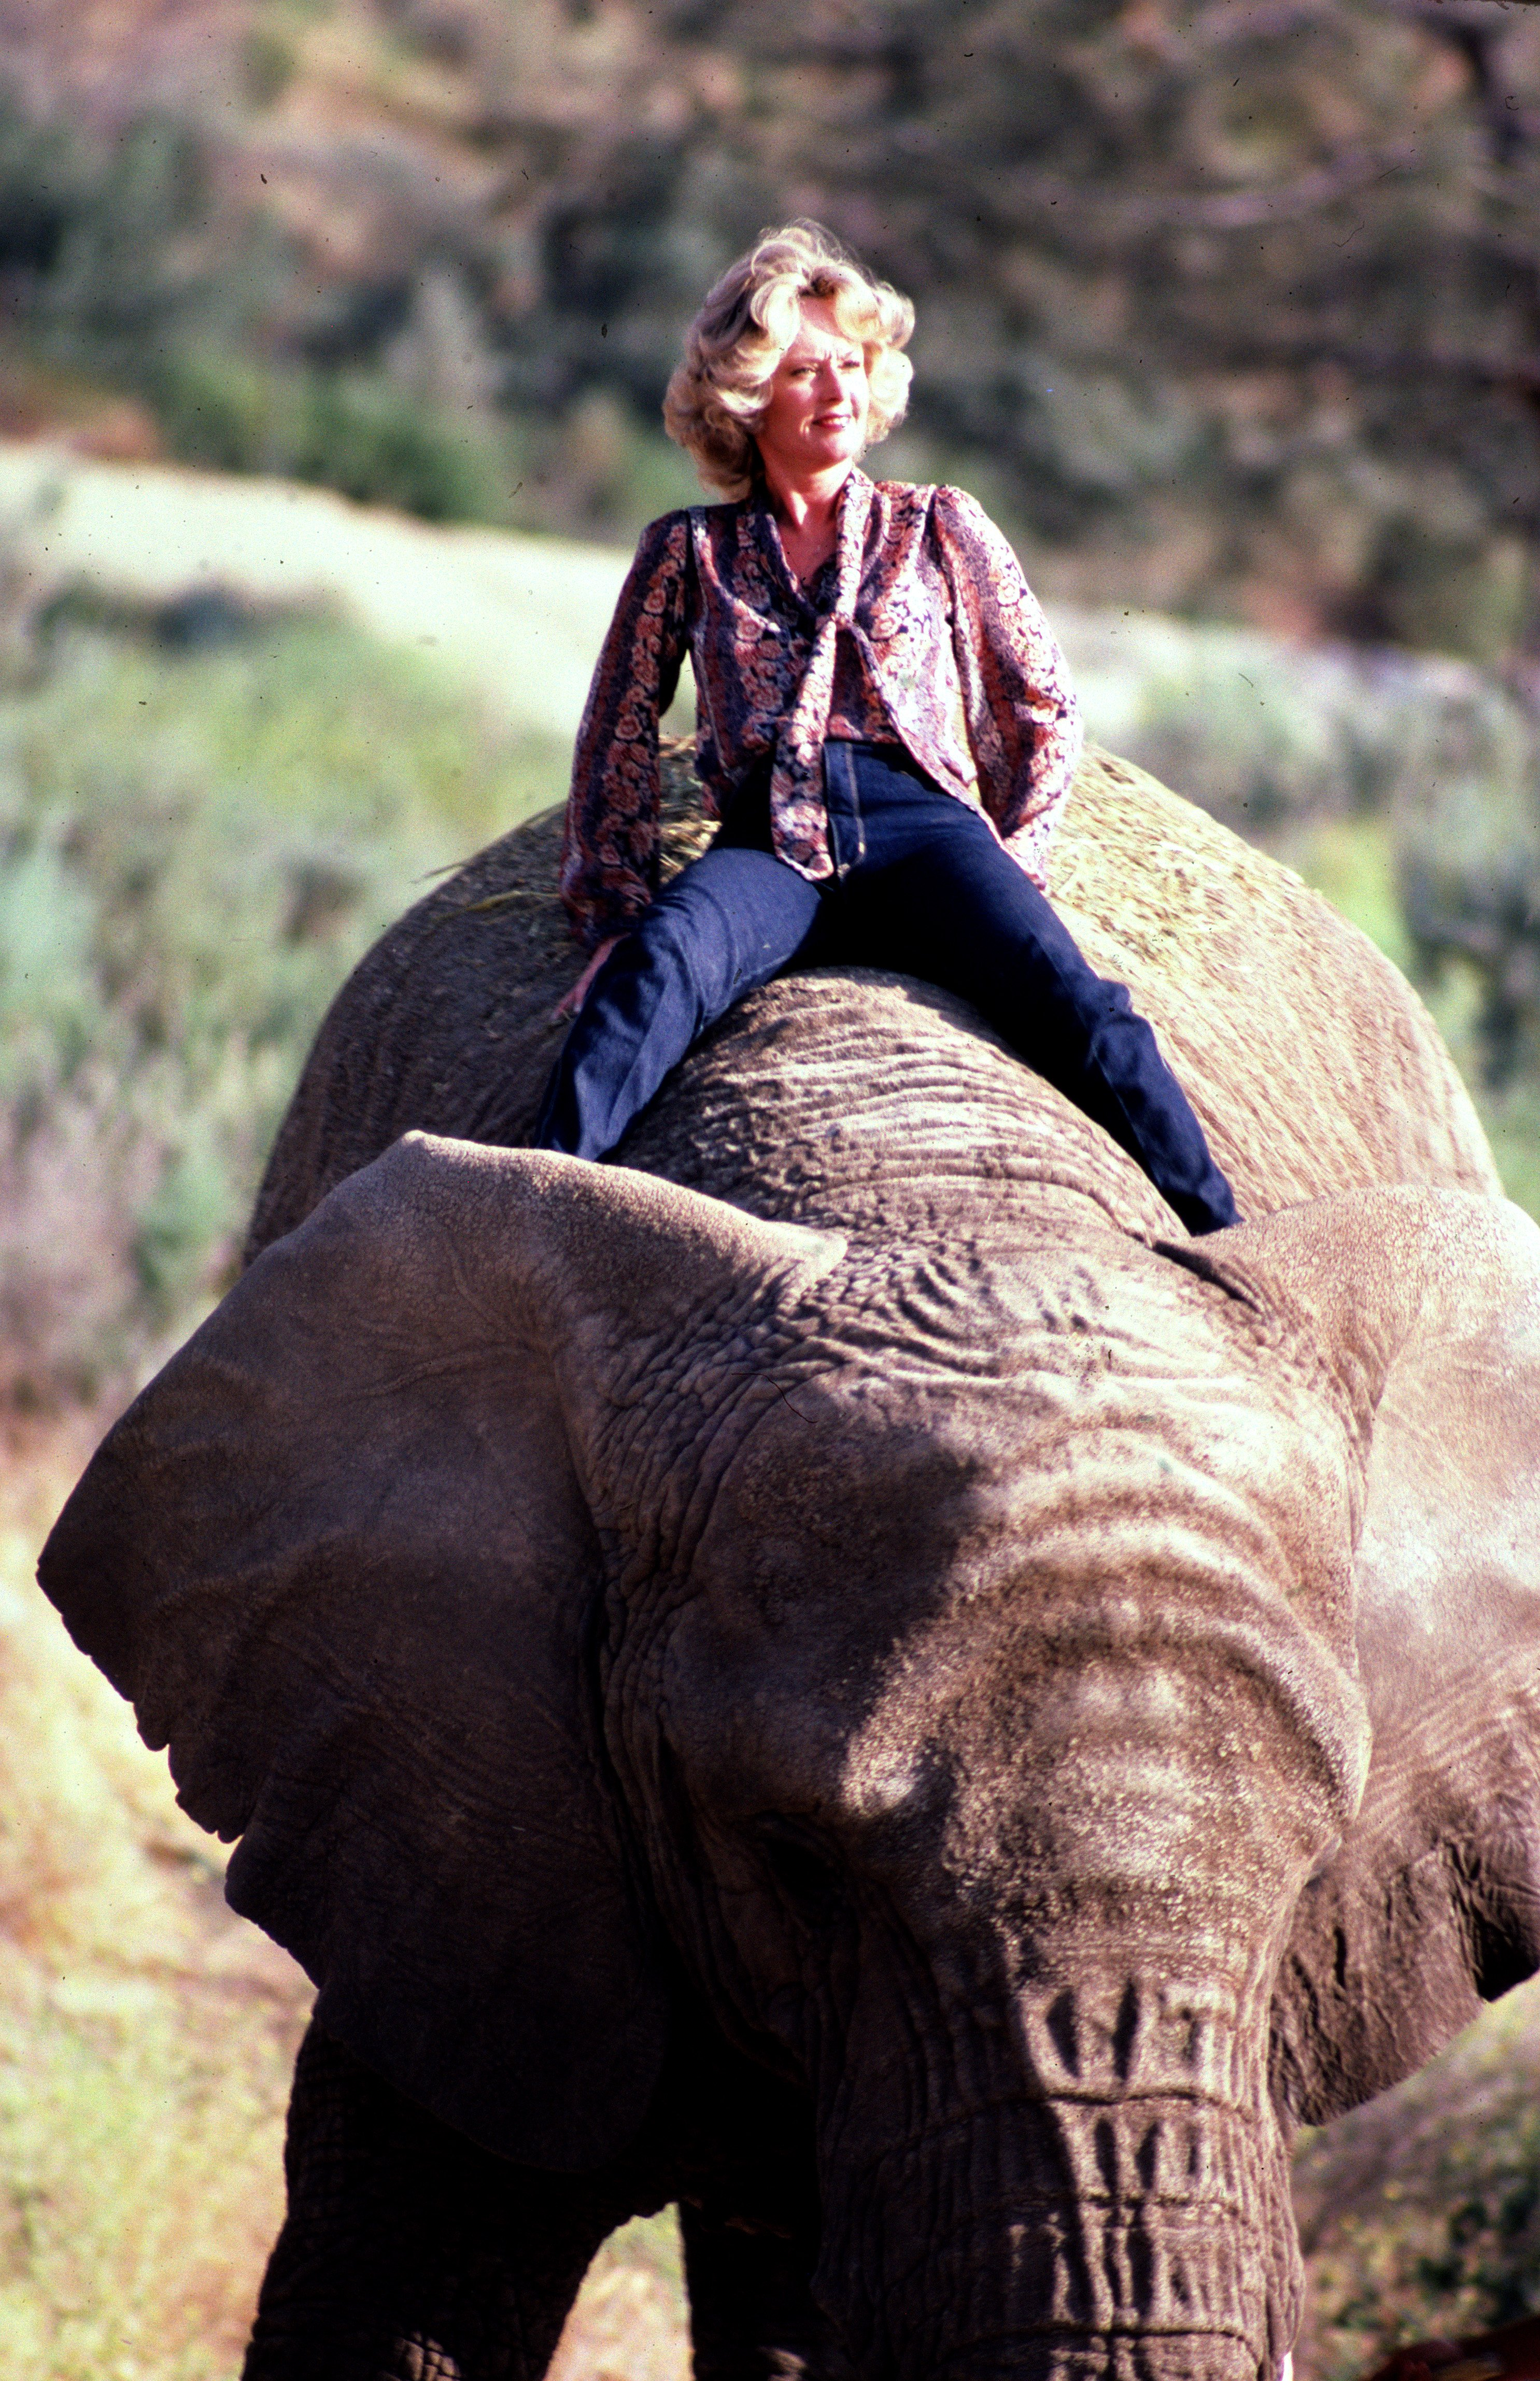 Actress Tippi Hedren, mother of Melanie Griffiths, star of the Alfred Hitchcock horror film The Birds sits astride an Elephant at her Saugus Animal reserve November 17, 1983 | Photo: Getty Images